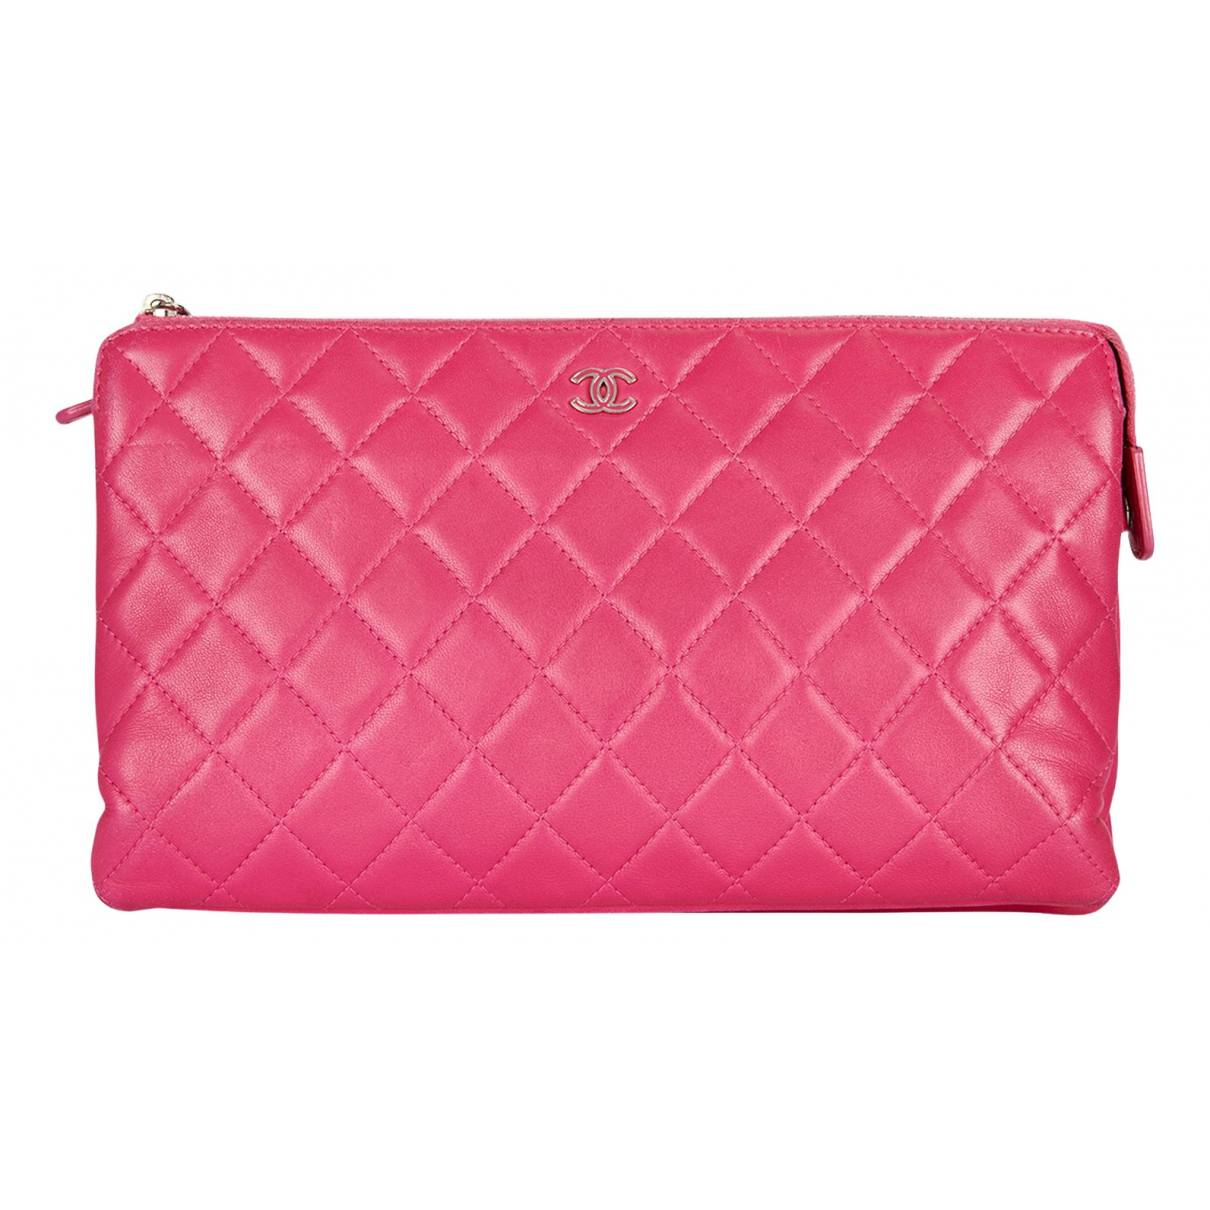 Chanel N Pink Leather Clutch bag for Women N